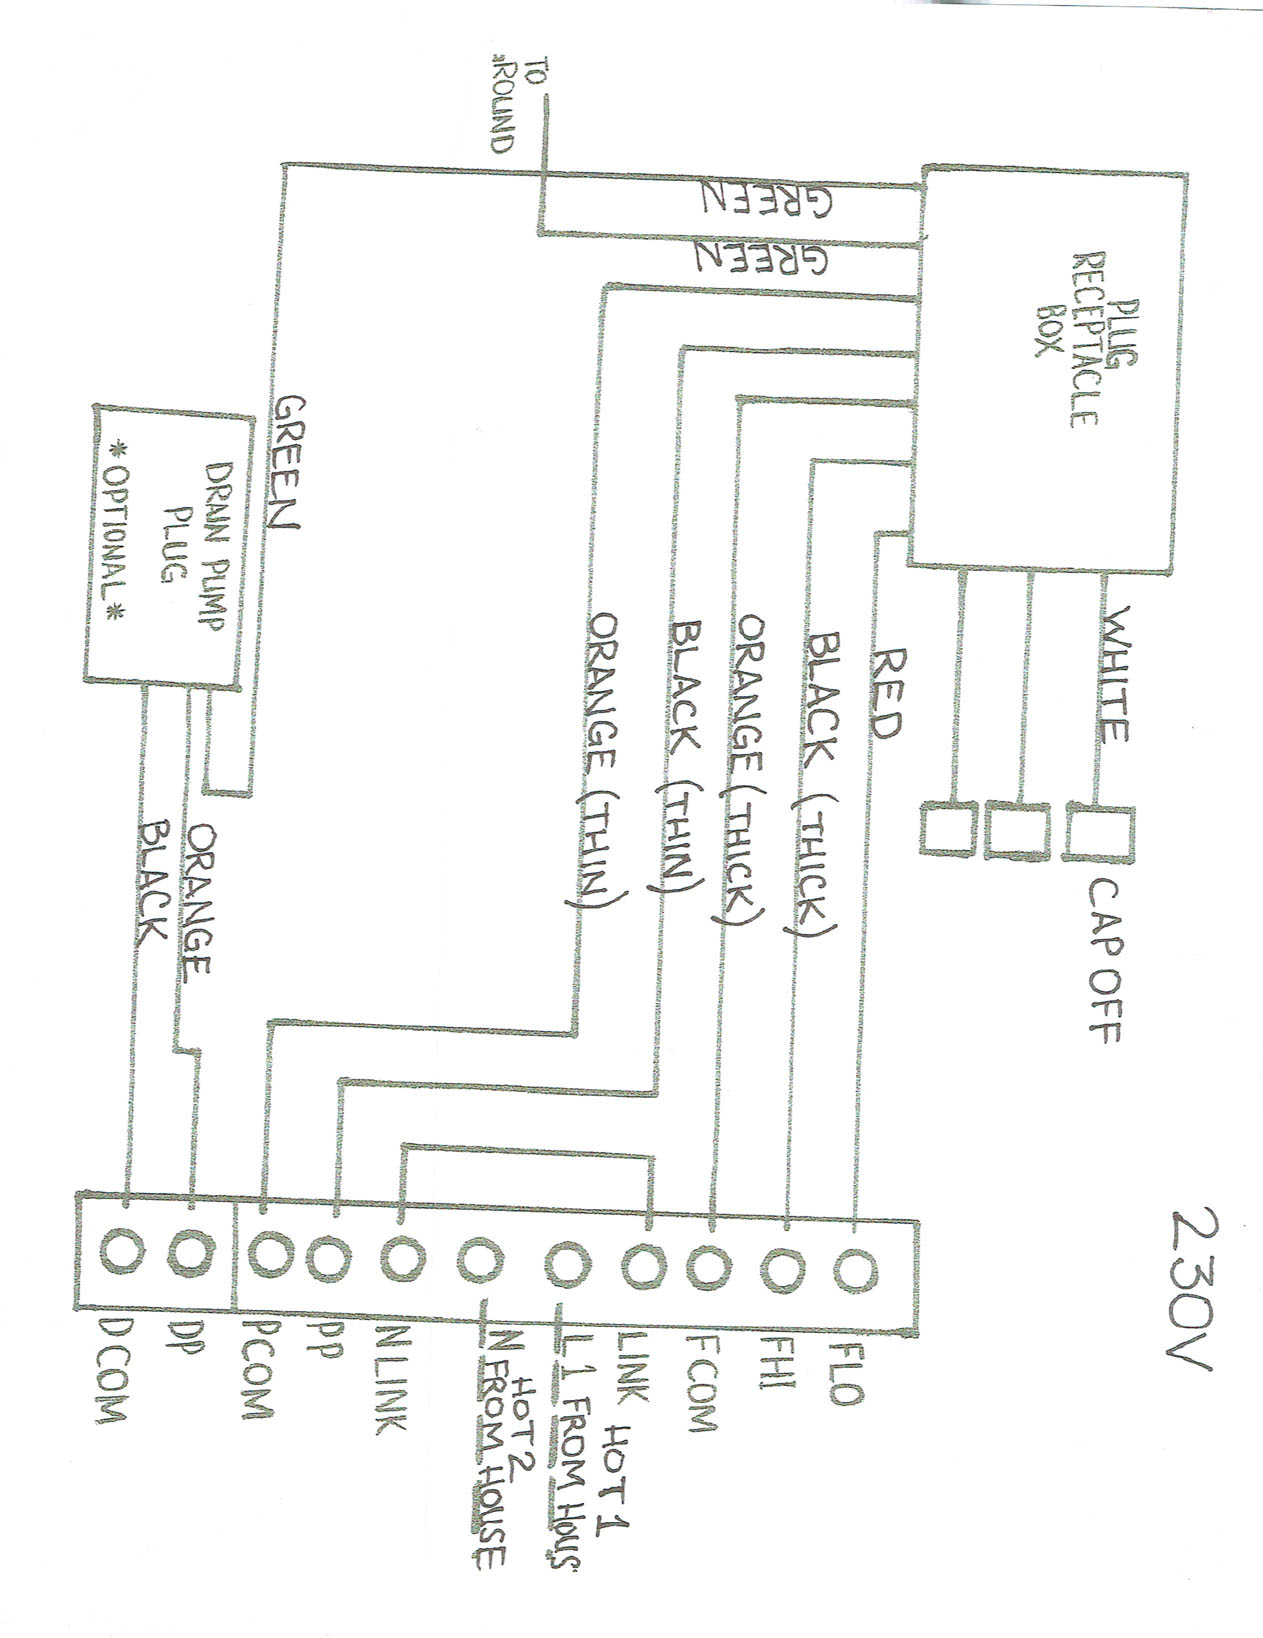 hight resolution of port a cool evaporator fan wiring diagram